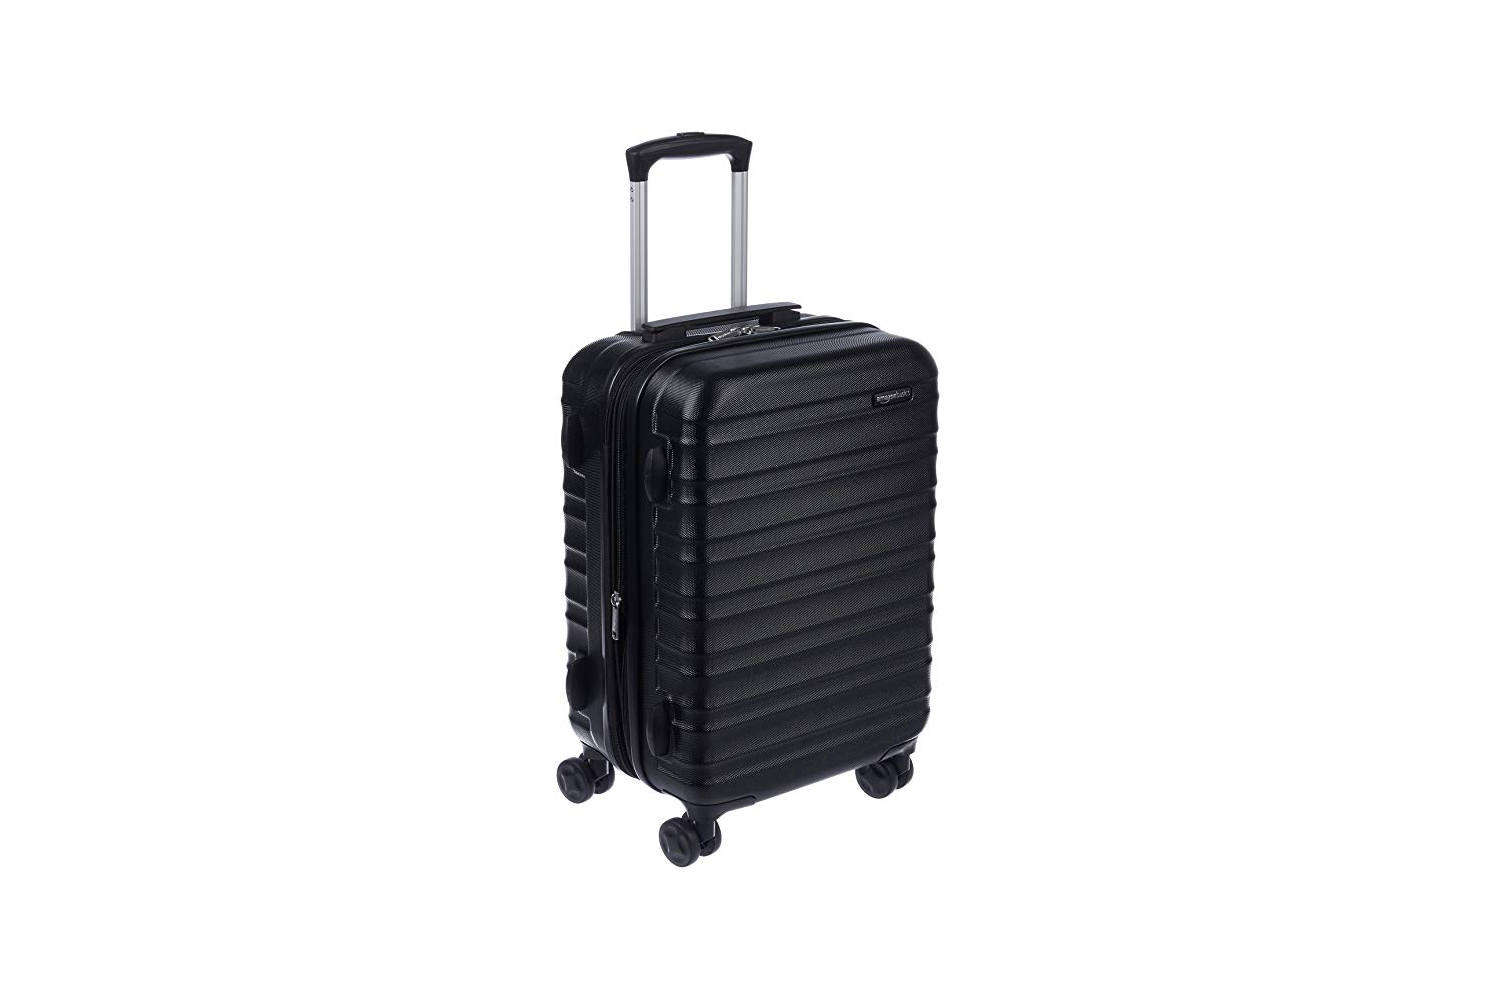 Annie owns the Hardside Spinner Luggage and has great things to say about it (see her review inFor the Last-Minute Weekender: Sturdy, Inexpensive Luggage from a Surprising Source); from $49.99.